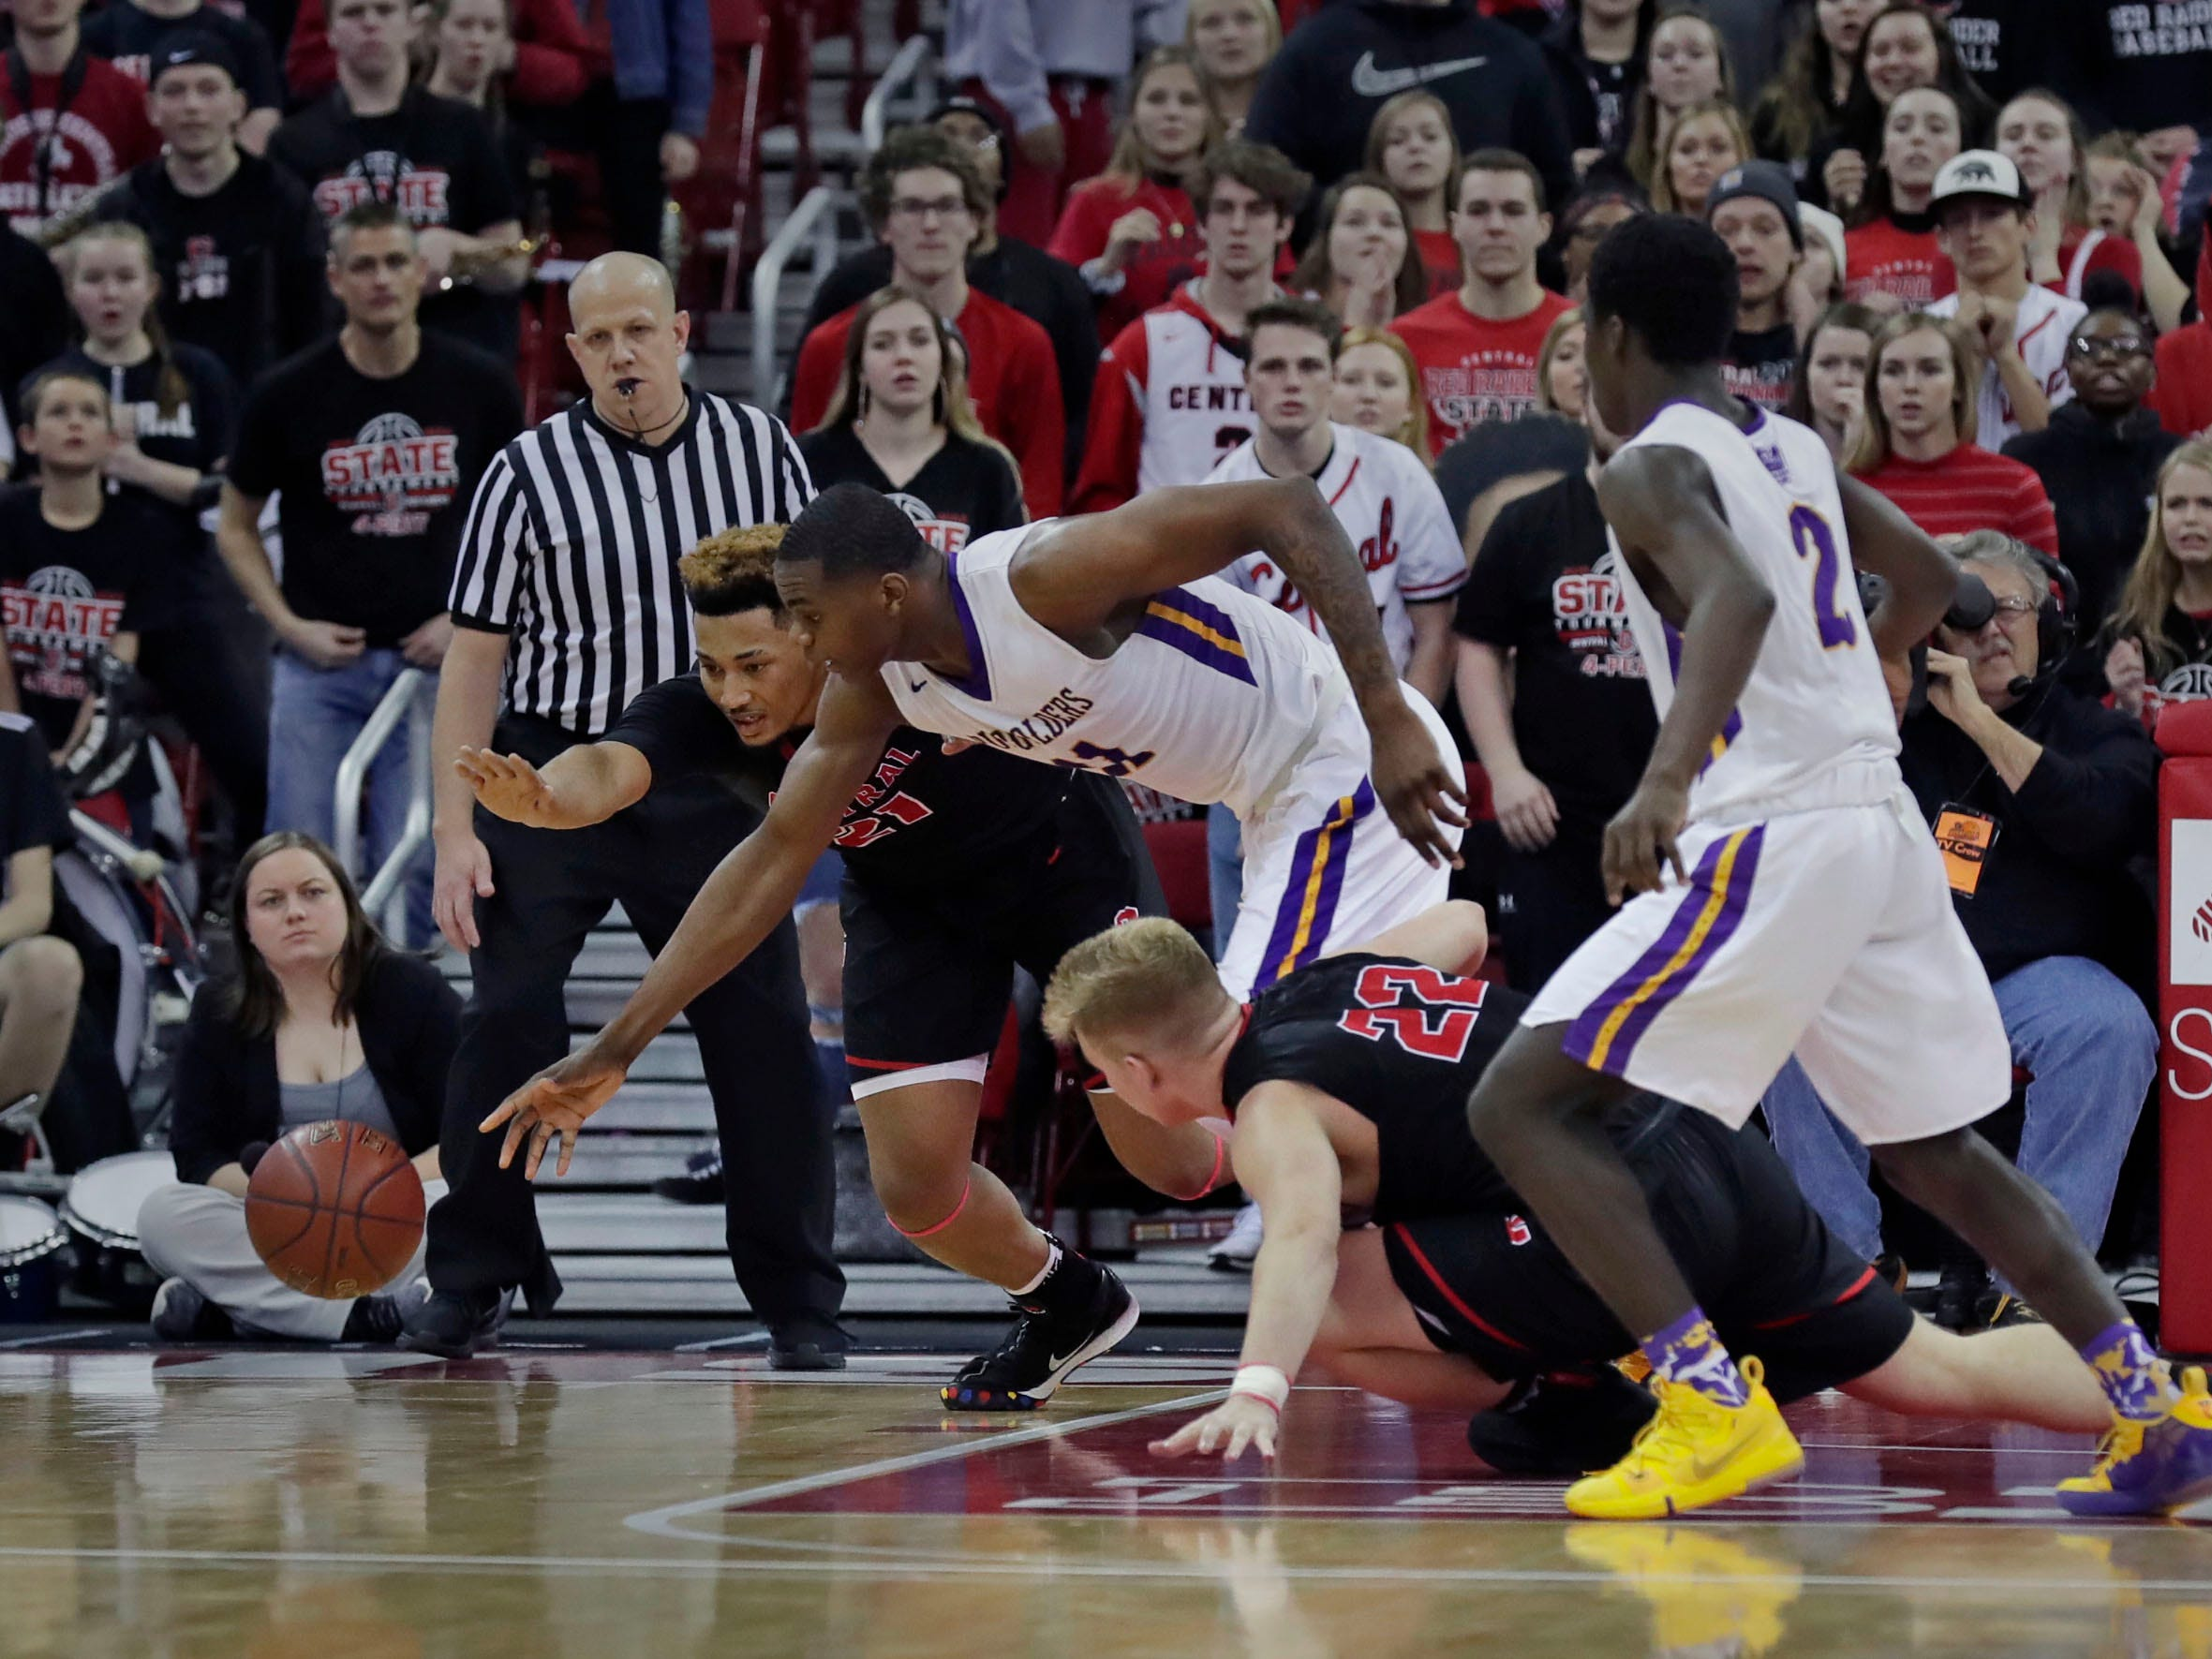 Milwaukee Washington's Michael Foster Jr. goes after a loose ball with La Crosse Central's Terrance Thompson.